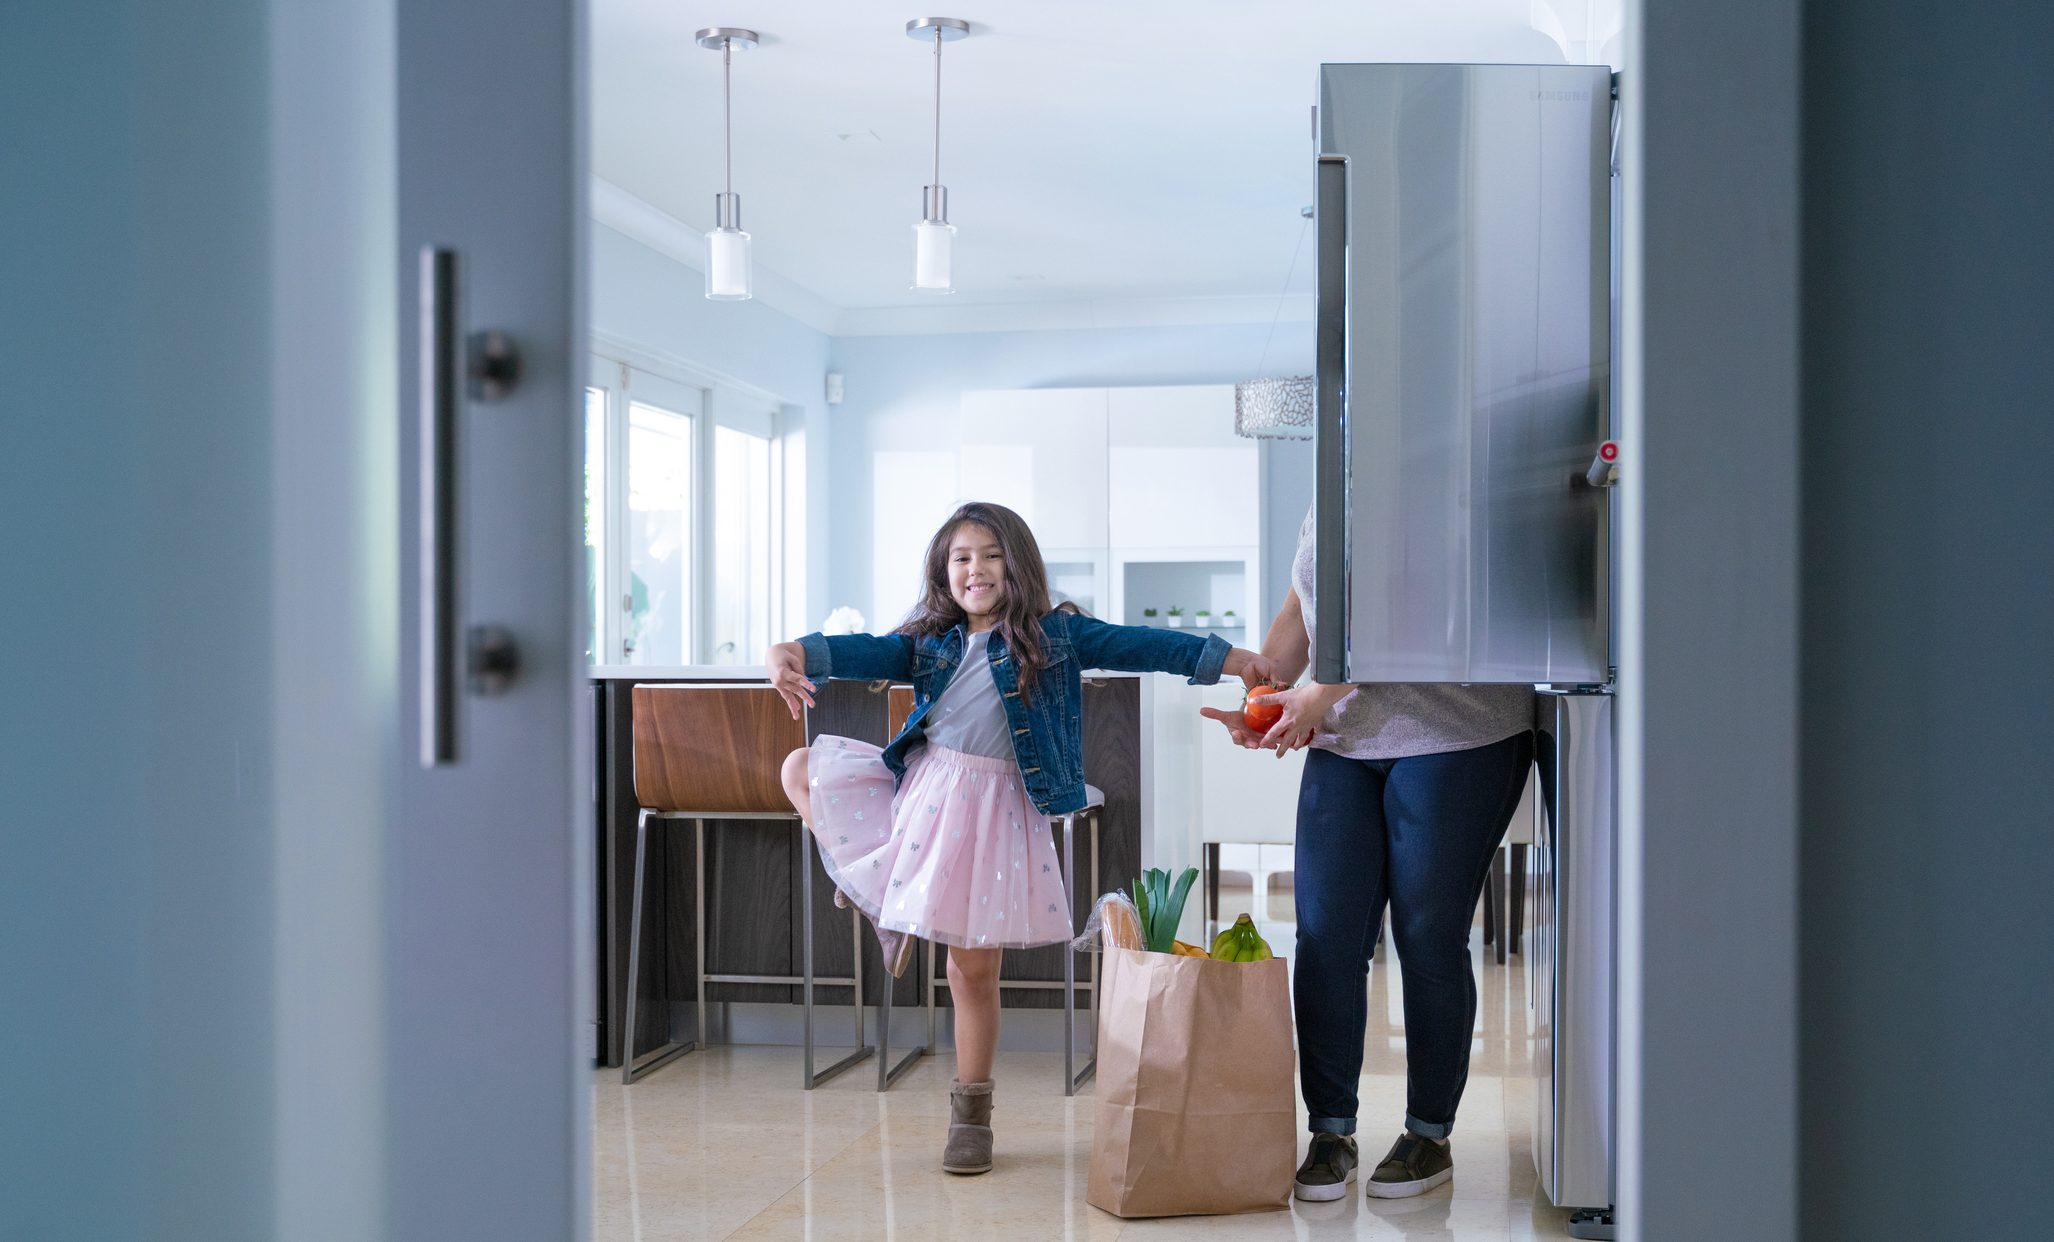 residential refrigerator with a young girl and her mom filling it with groceries